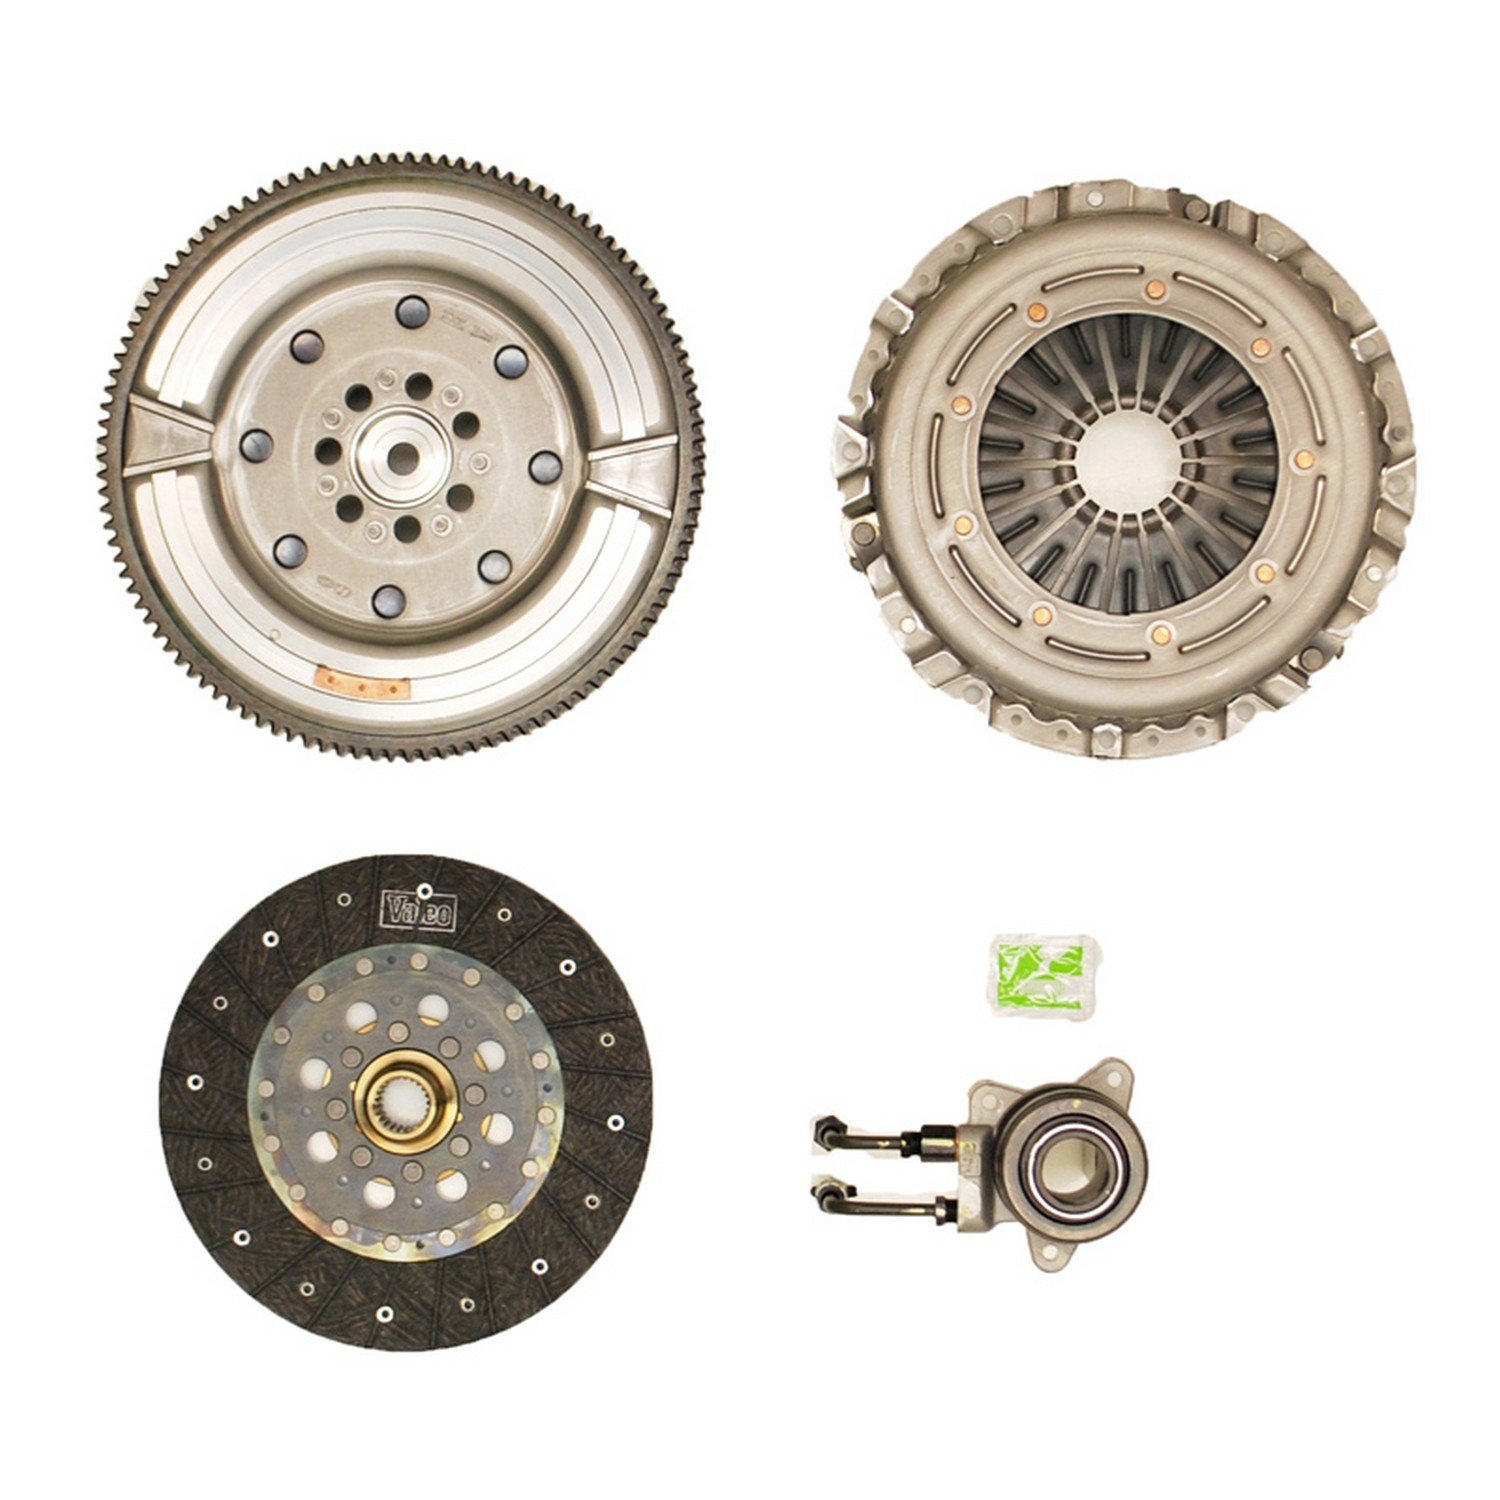 Valeo 52353202 OE Clutch Kit